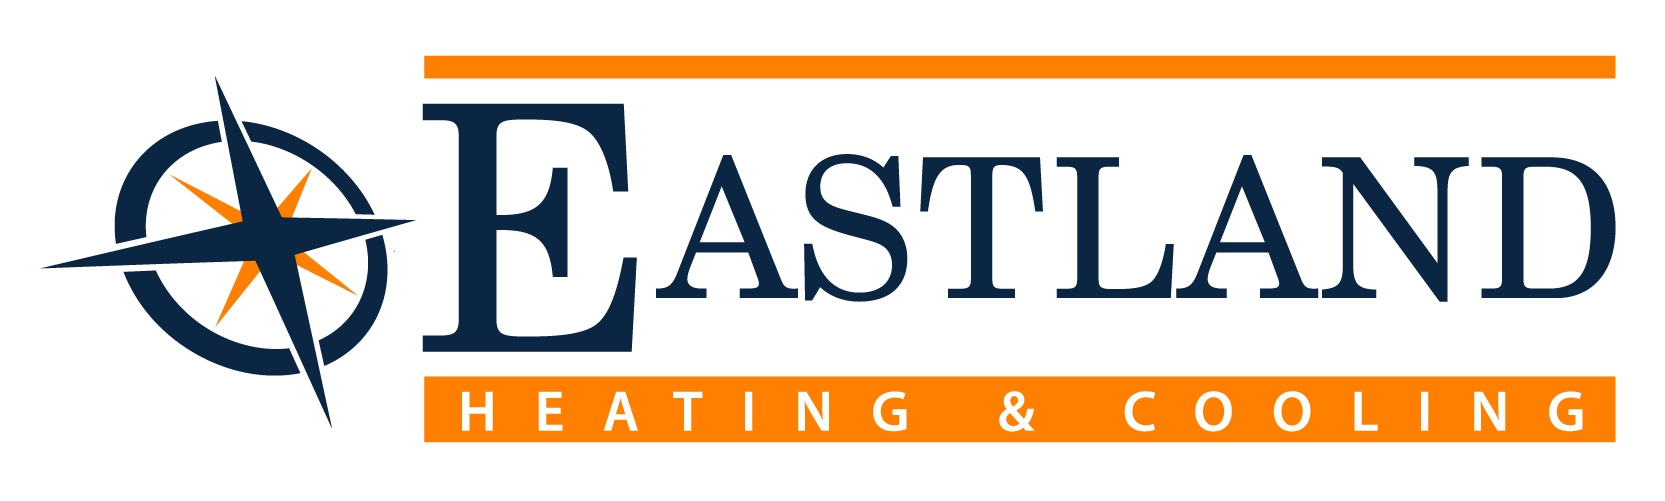 Eastland Heating & Cooling